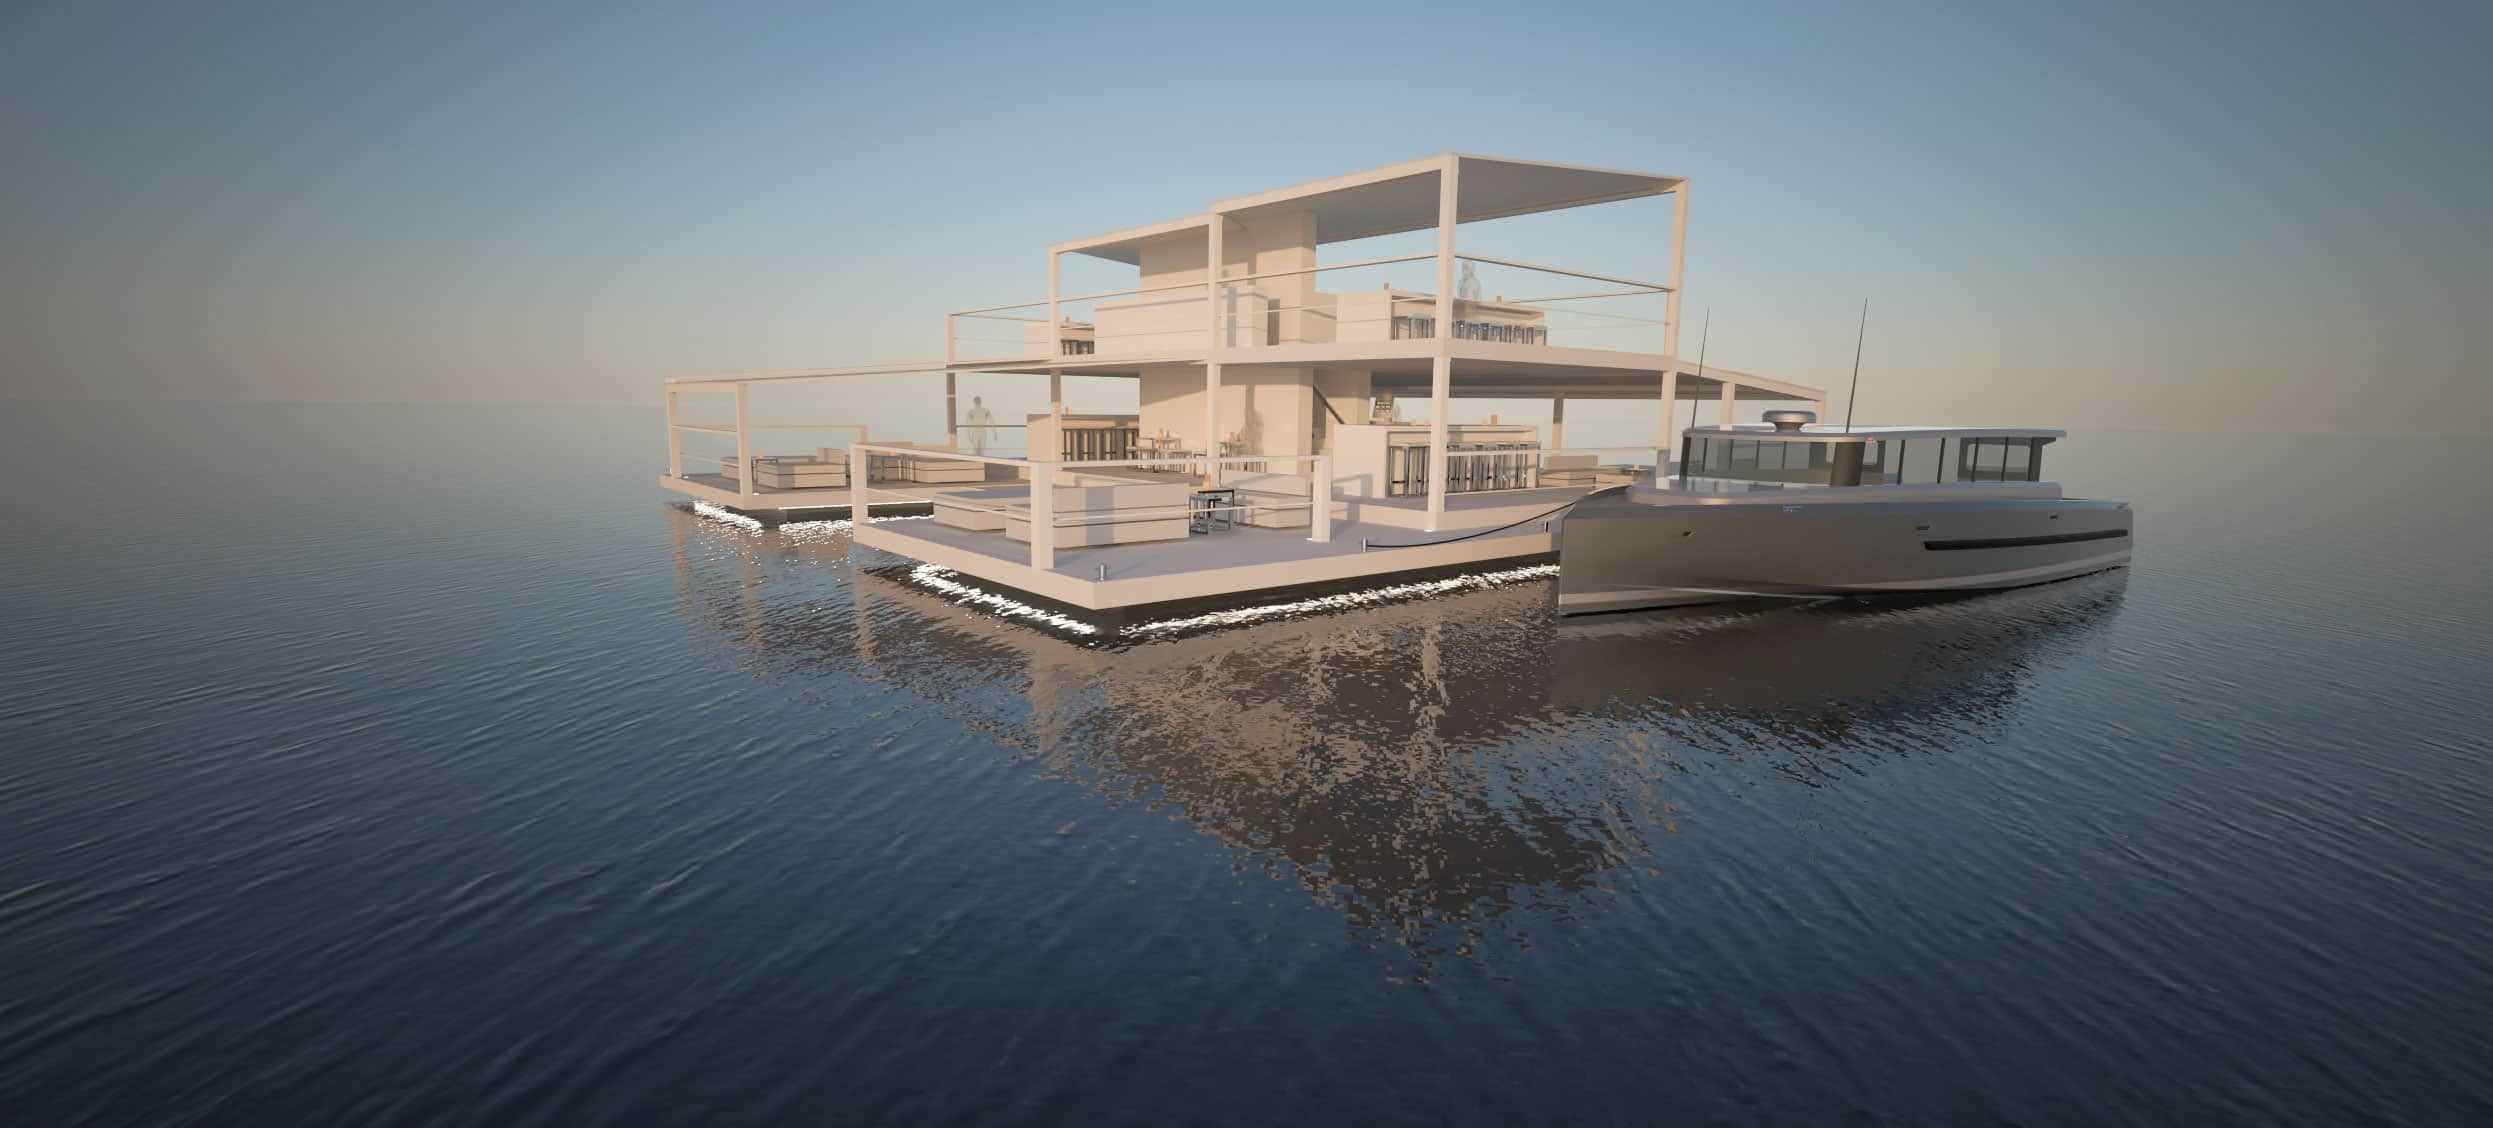 Solar electric bar to charge electric boats